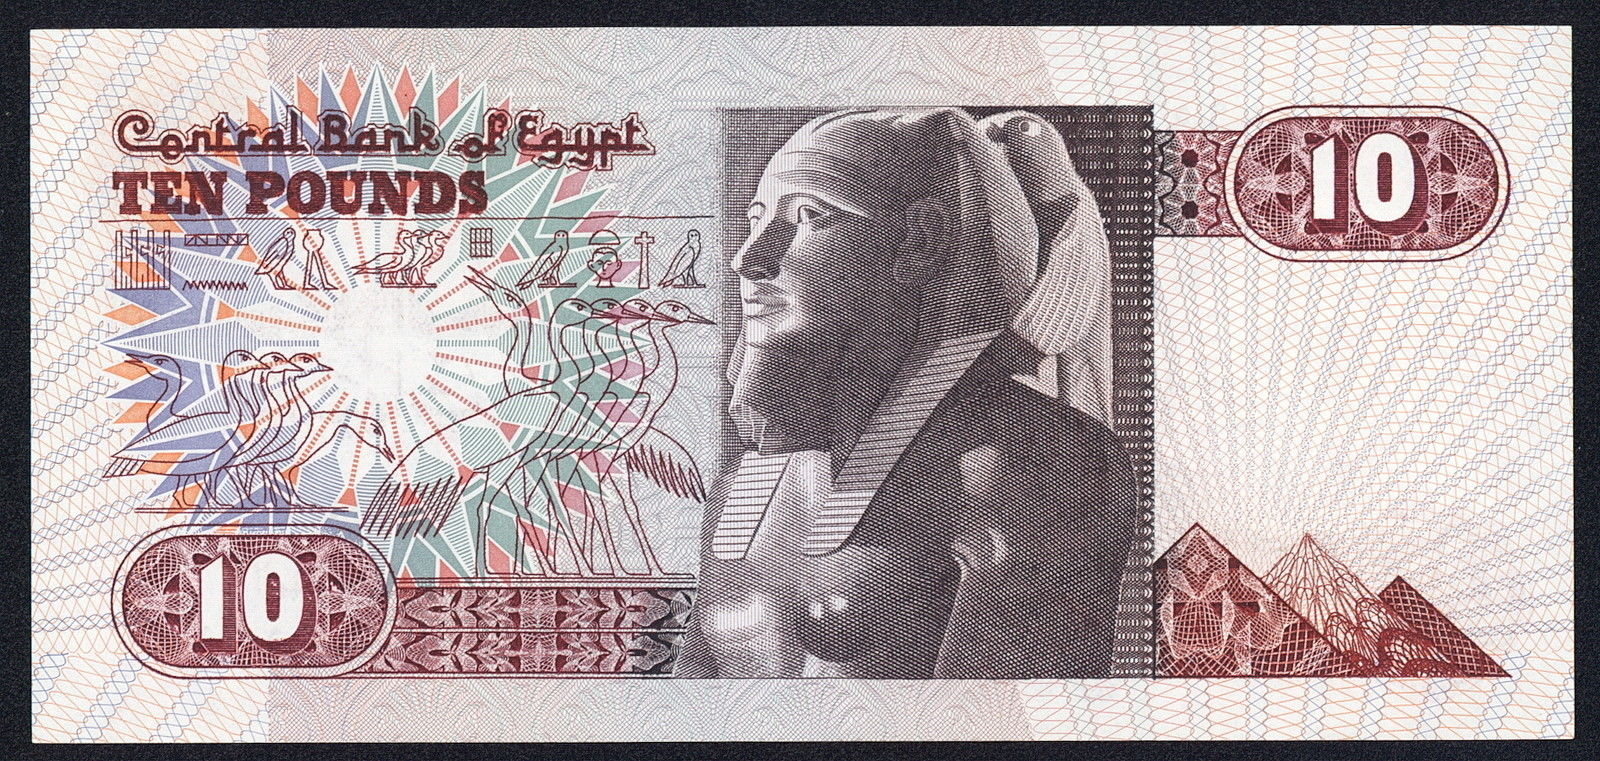 10 egyptian pounds note 1982world banknotes amp coins